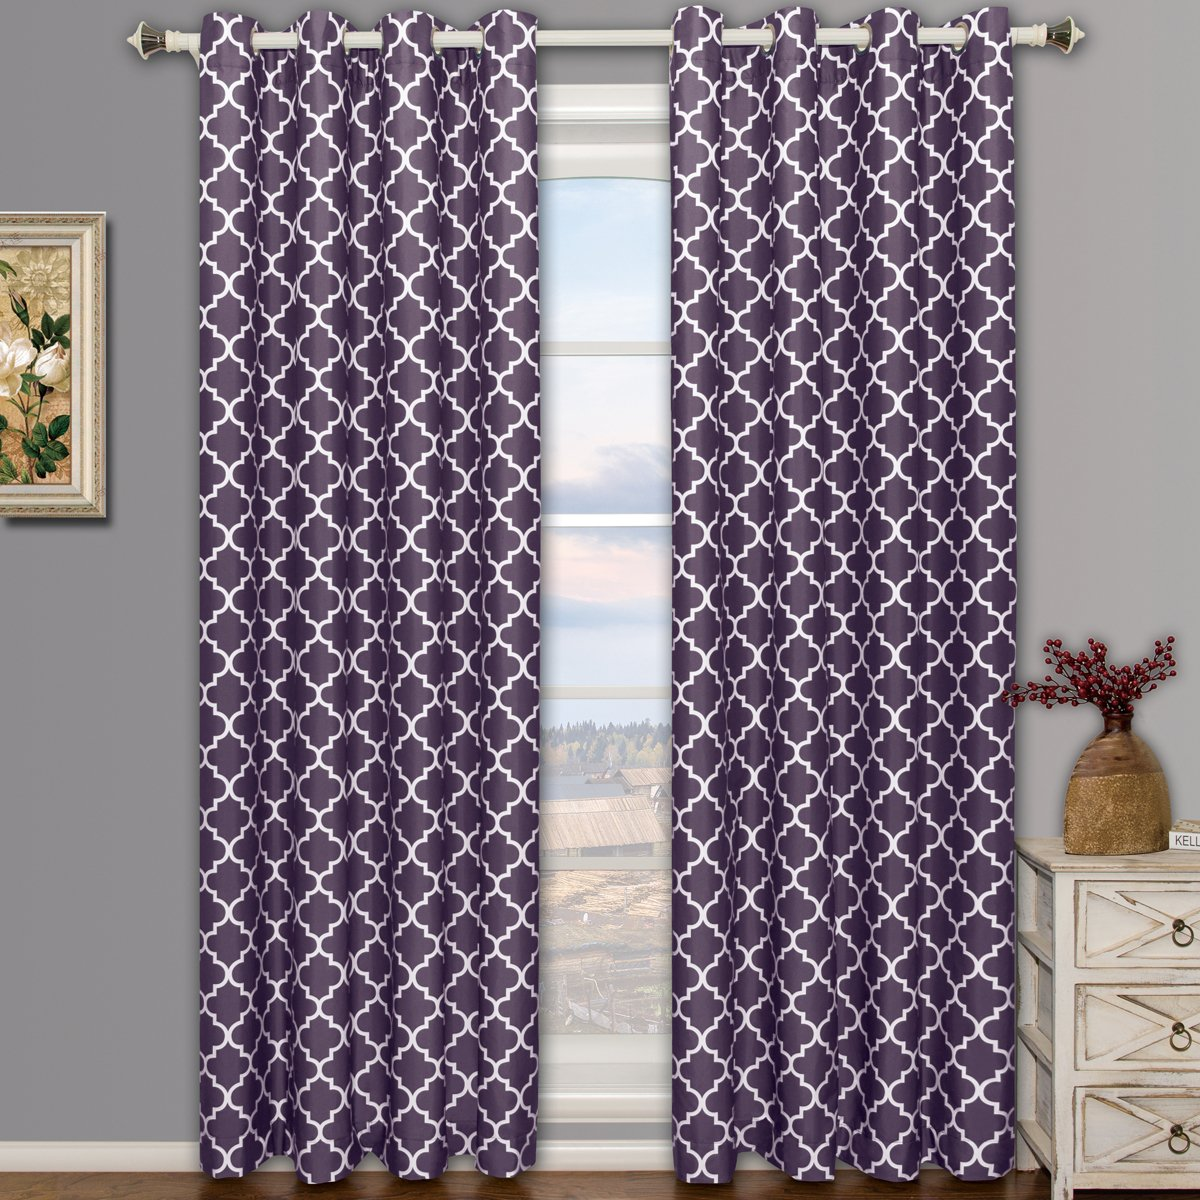 Meridian Purple Grommet Room Darkening Window Curtain Panels, Pair by Royal Hotel